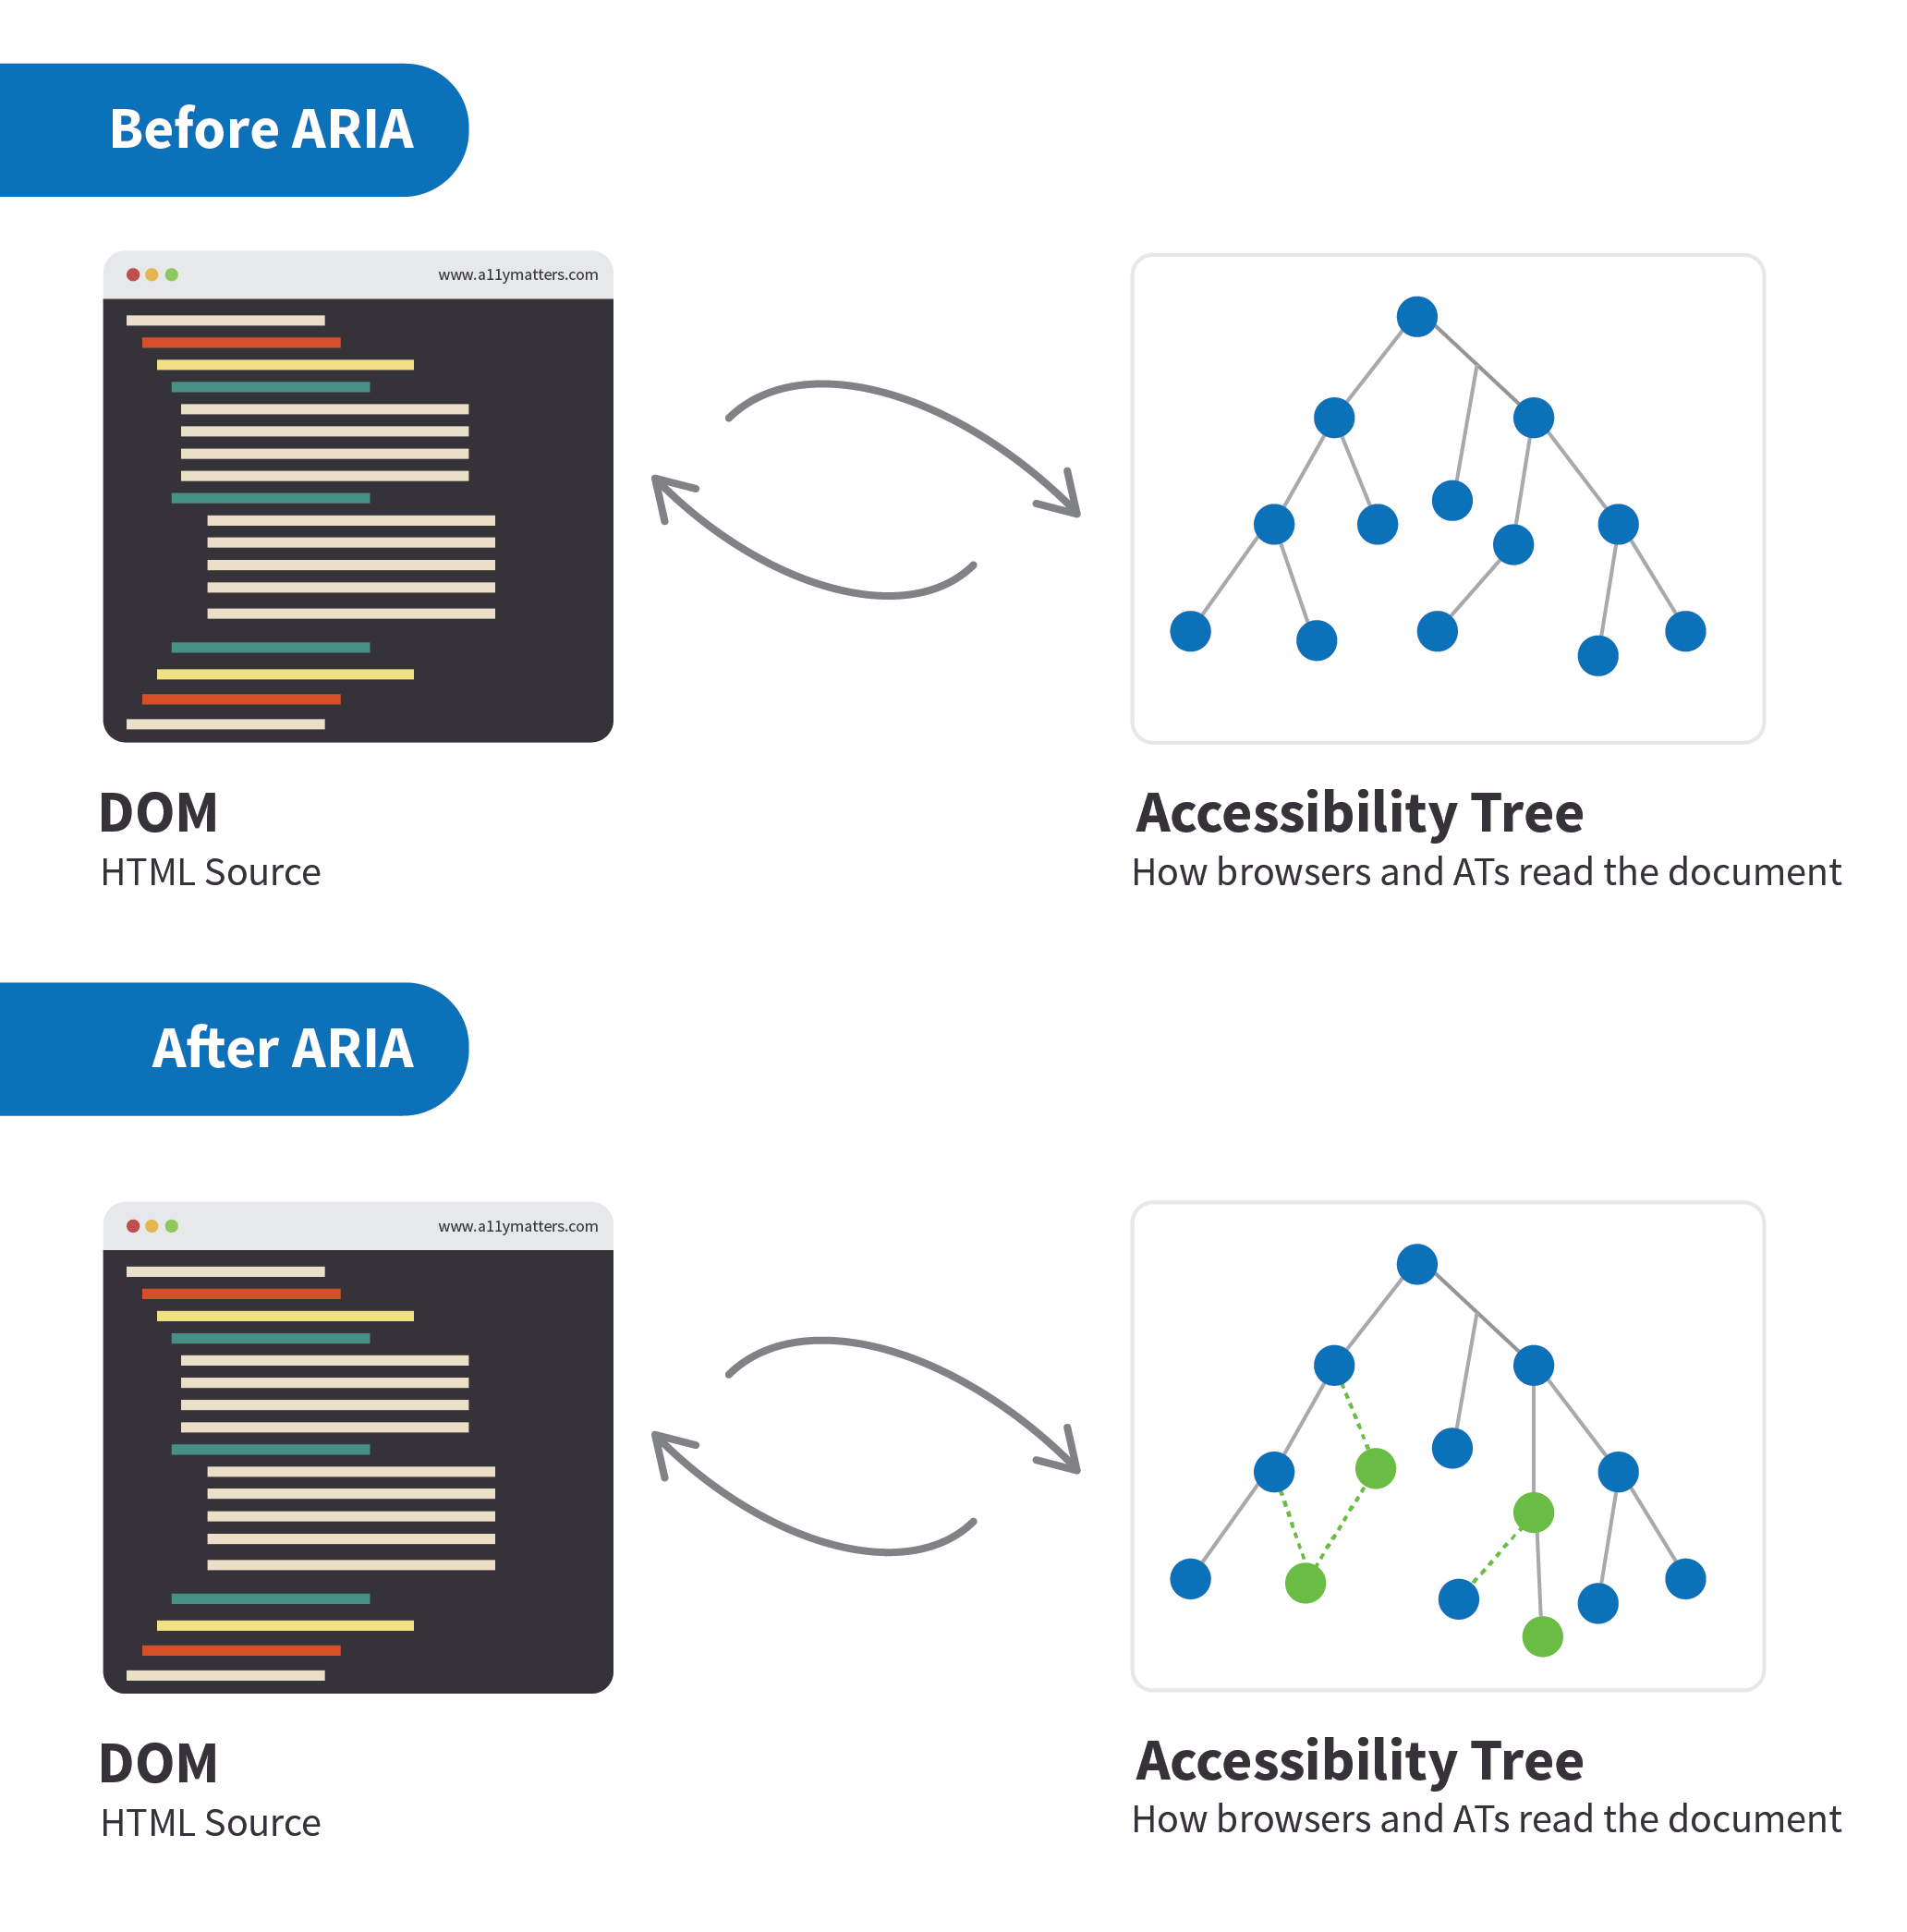 Comparing the accessibility before and after using ARIA